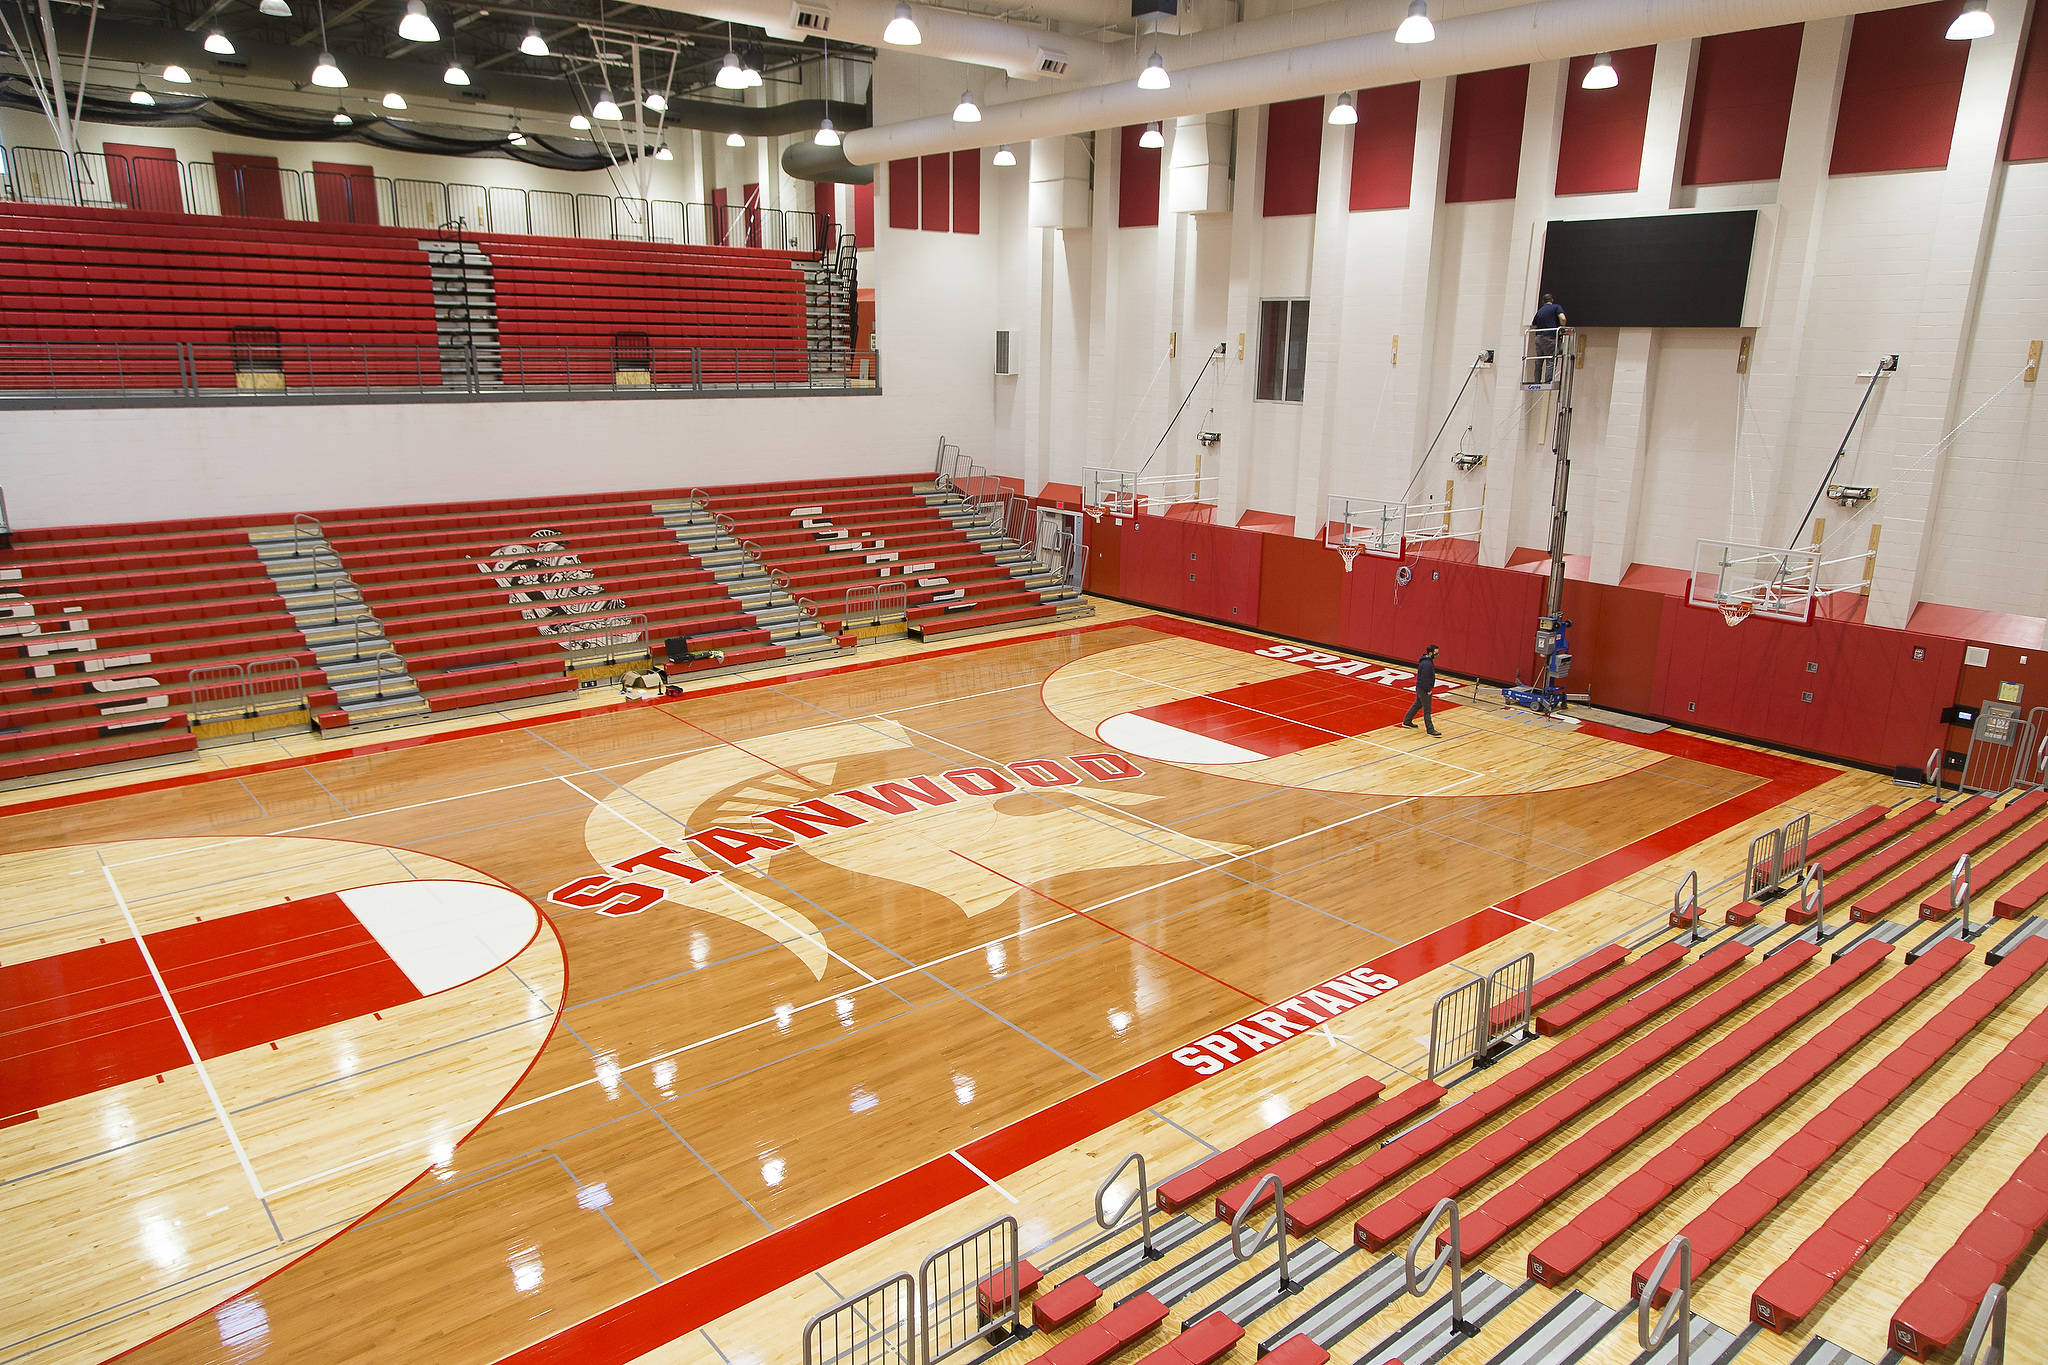 Crews work on the video display Wednesday in the main gym at Stanwood High School. (Andy Bronson / The Herald)